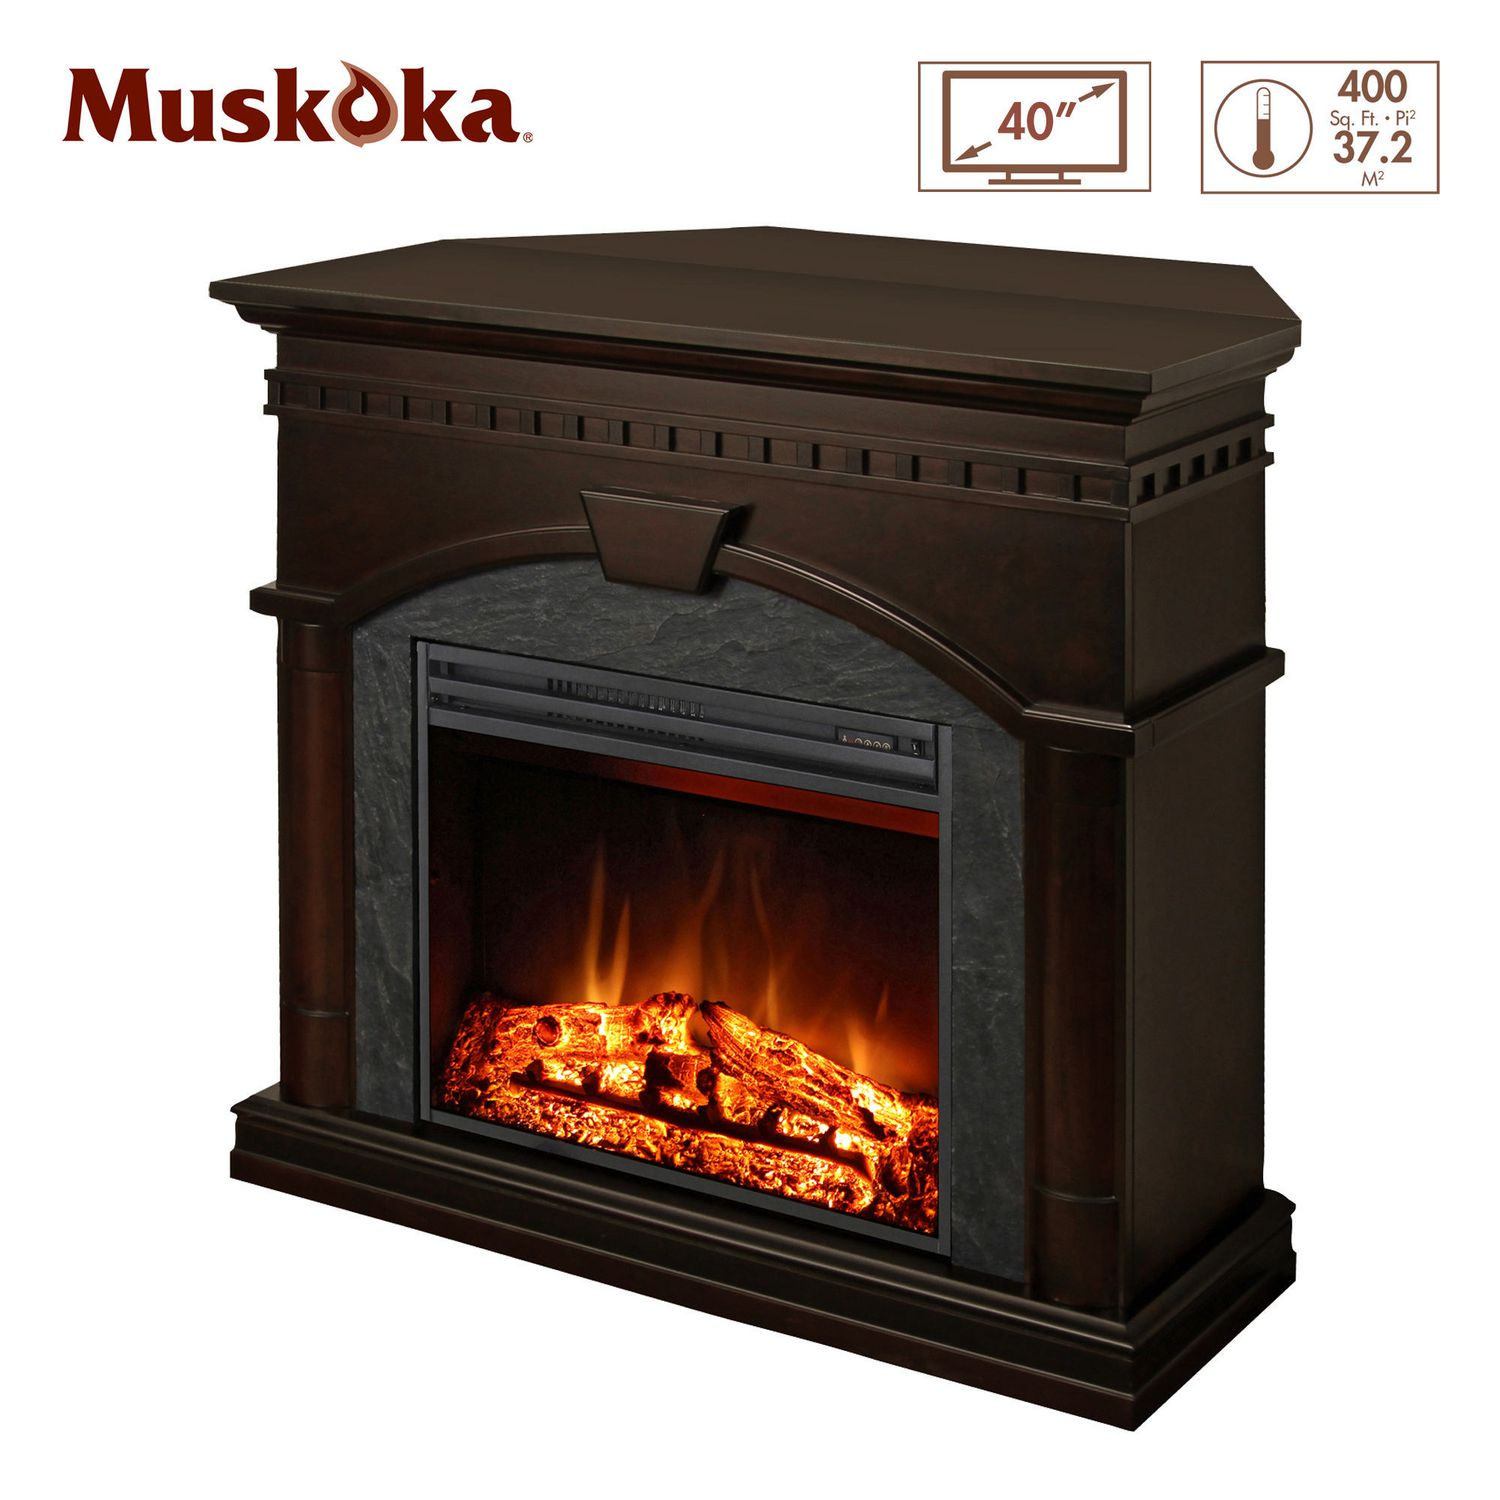 Awesome muskoka electric fireplace for home furniture with muskoka electric fireplace insert